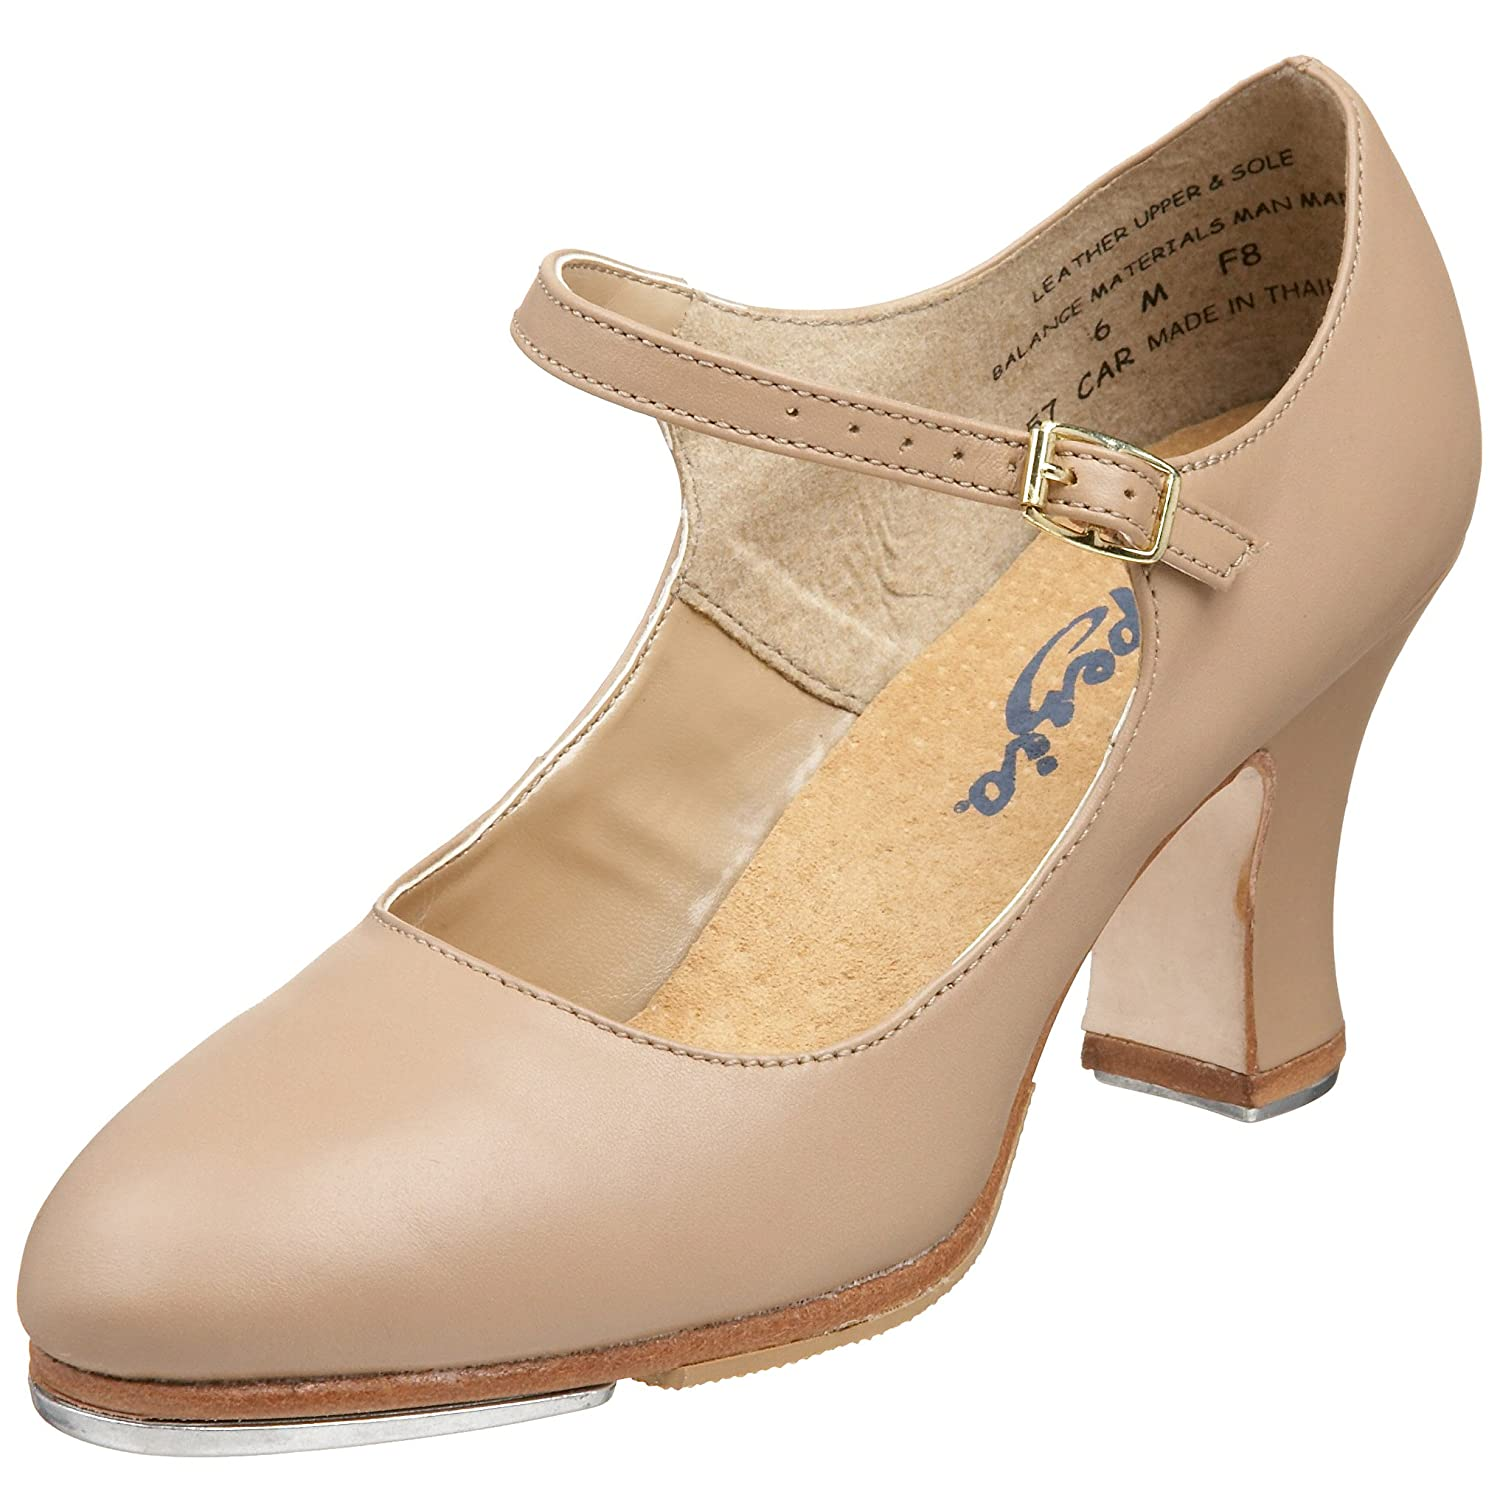 Vintage 1920s Shoe Styles Capezio Womens 657 Manhattan Xtreme Tap Shoe $82.95 AT vintagedancer.com